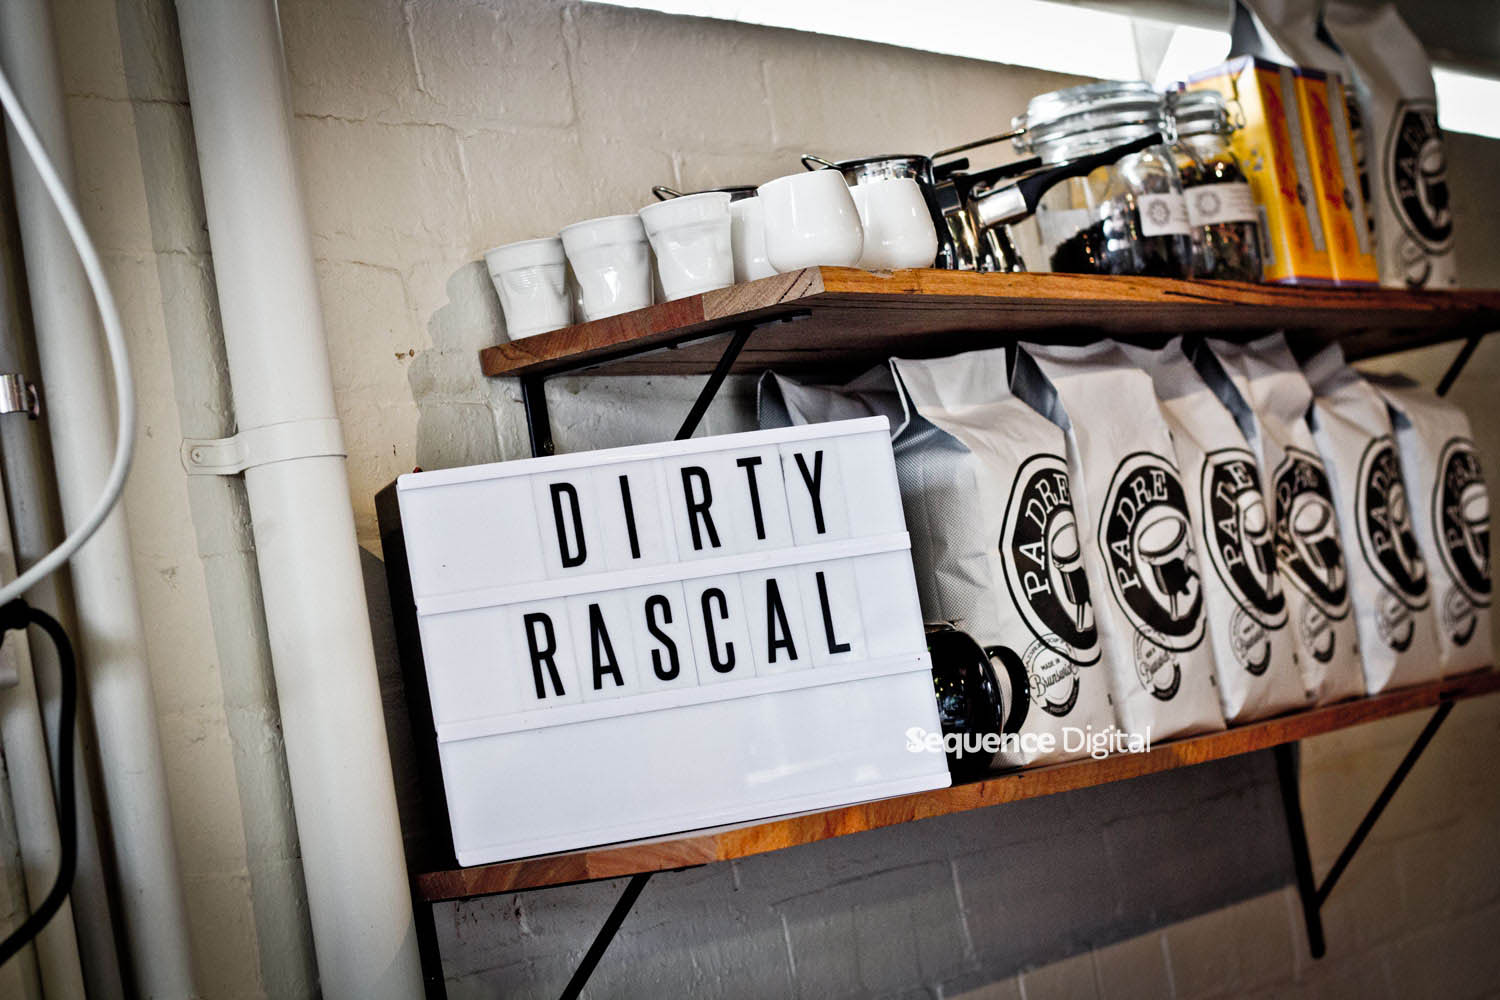 Dirty Rascal Cafe Geelong - Signage Behind the Bar